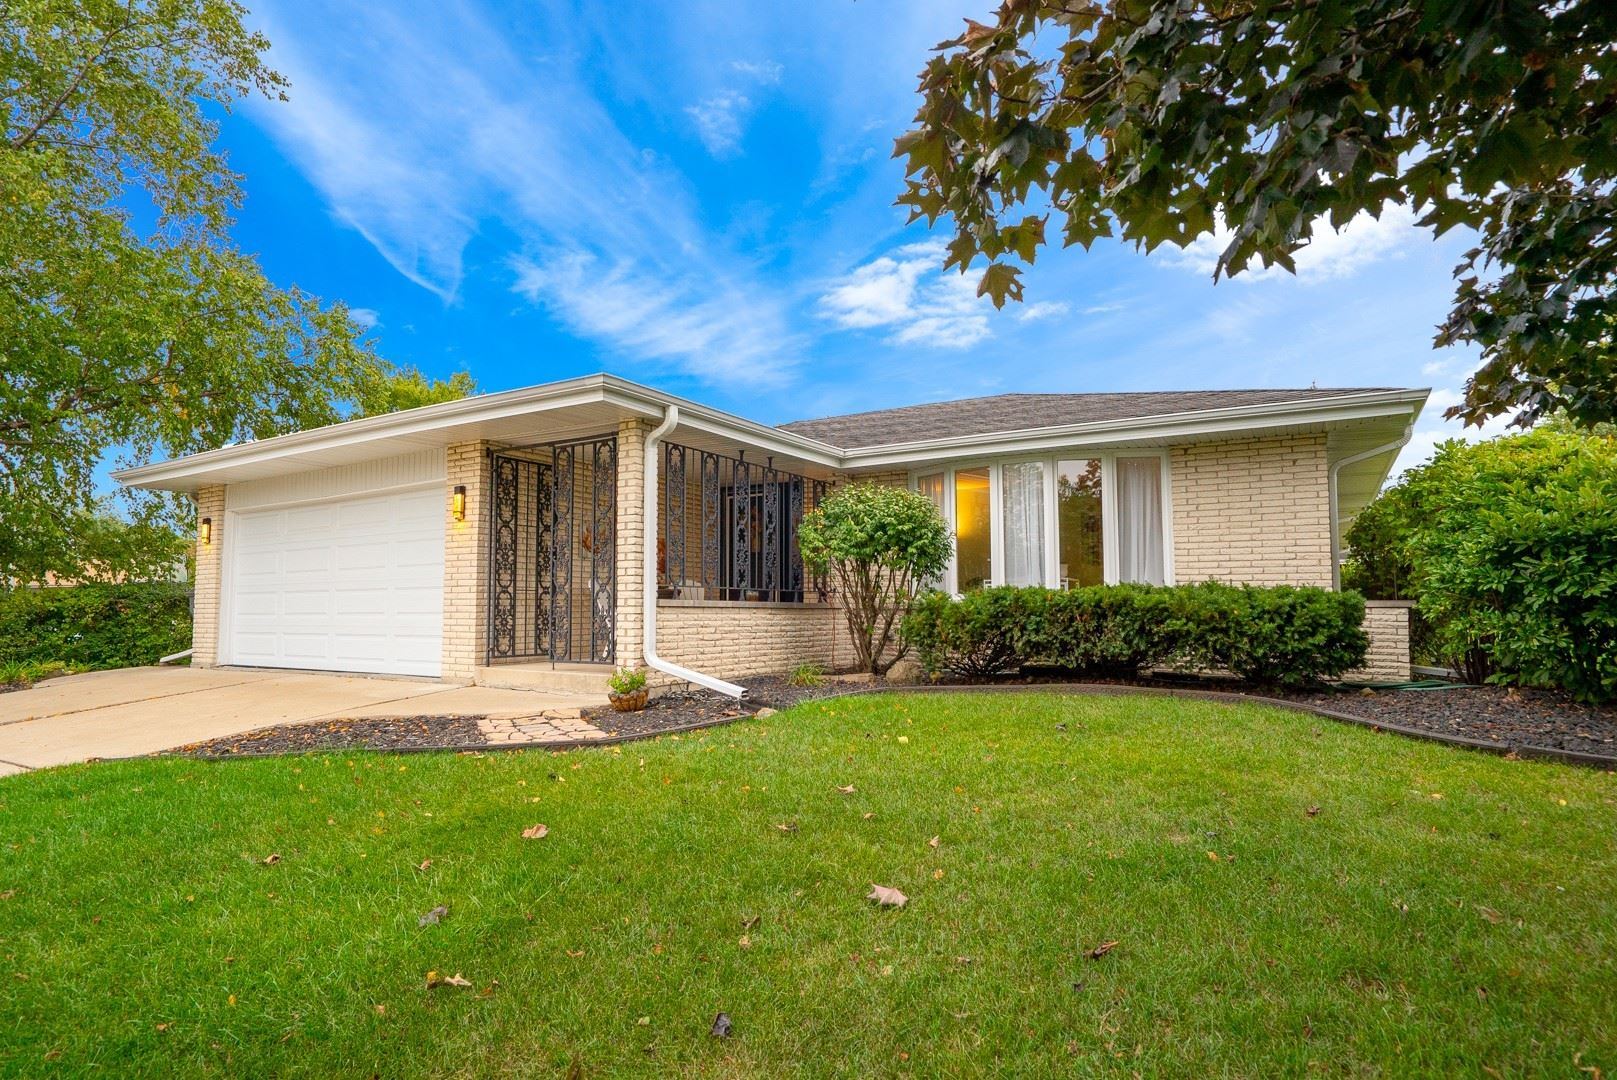 15255 Lawrence Court, Orland Park, IL 60462 - #: 11242655